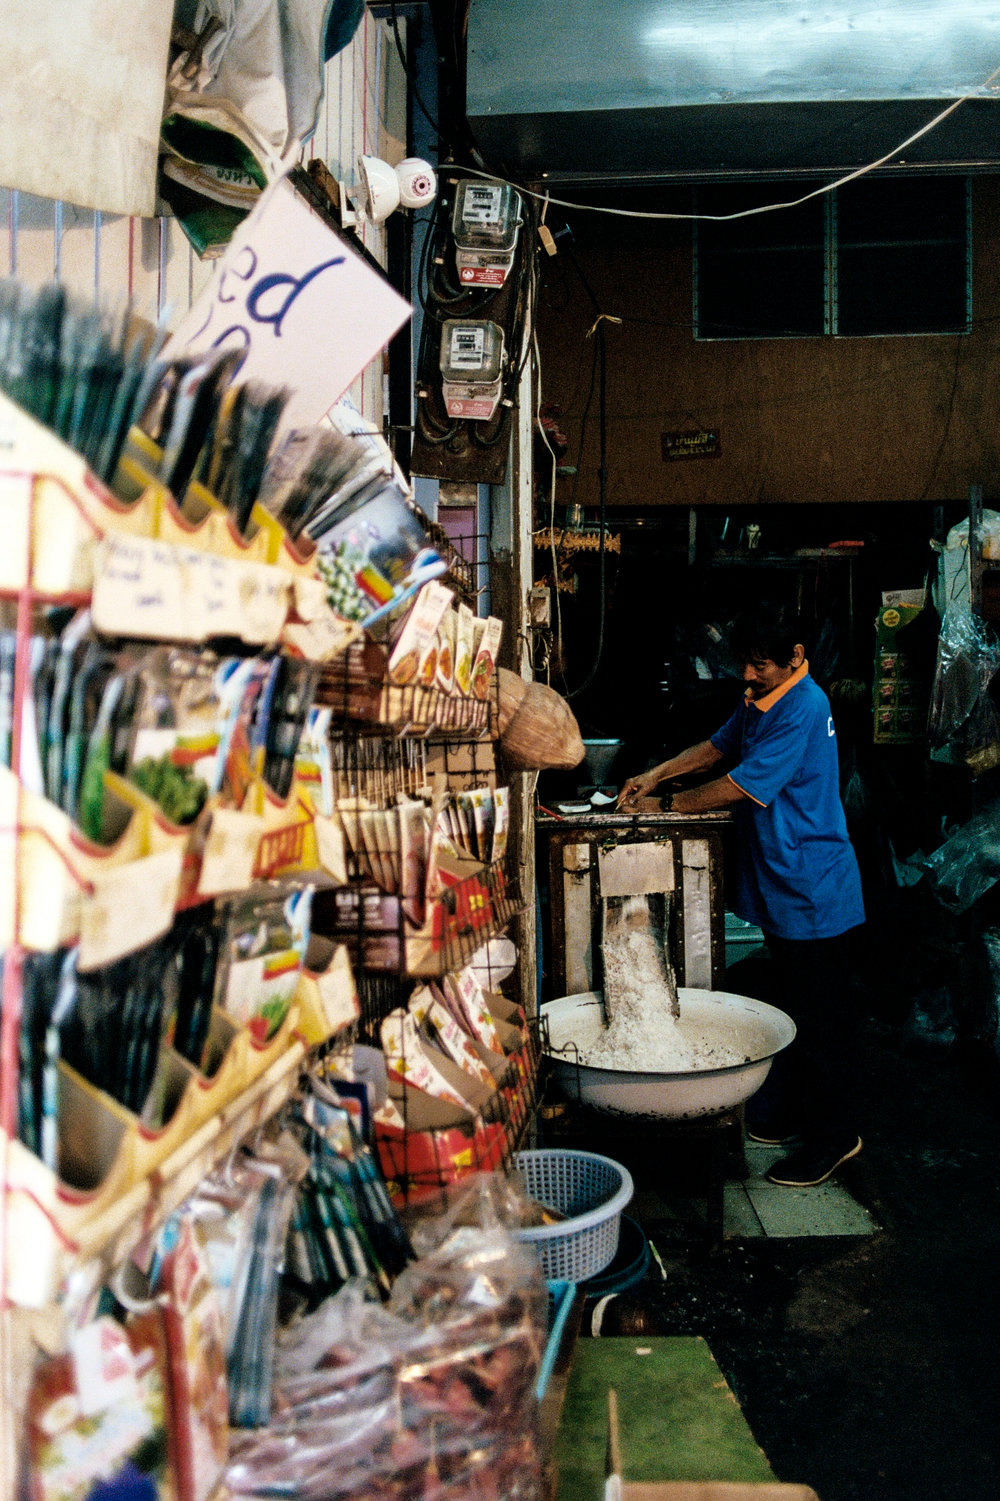 A shop worker shreds coconut at a produce market.